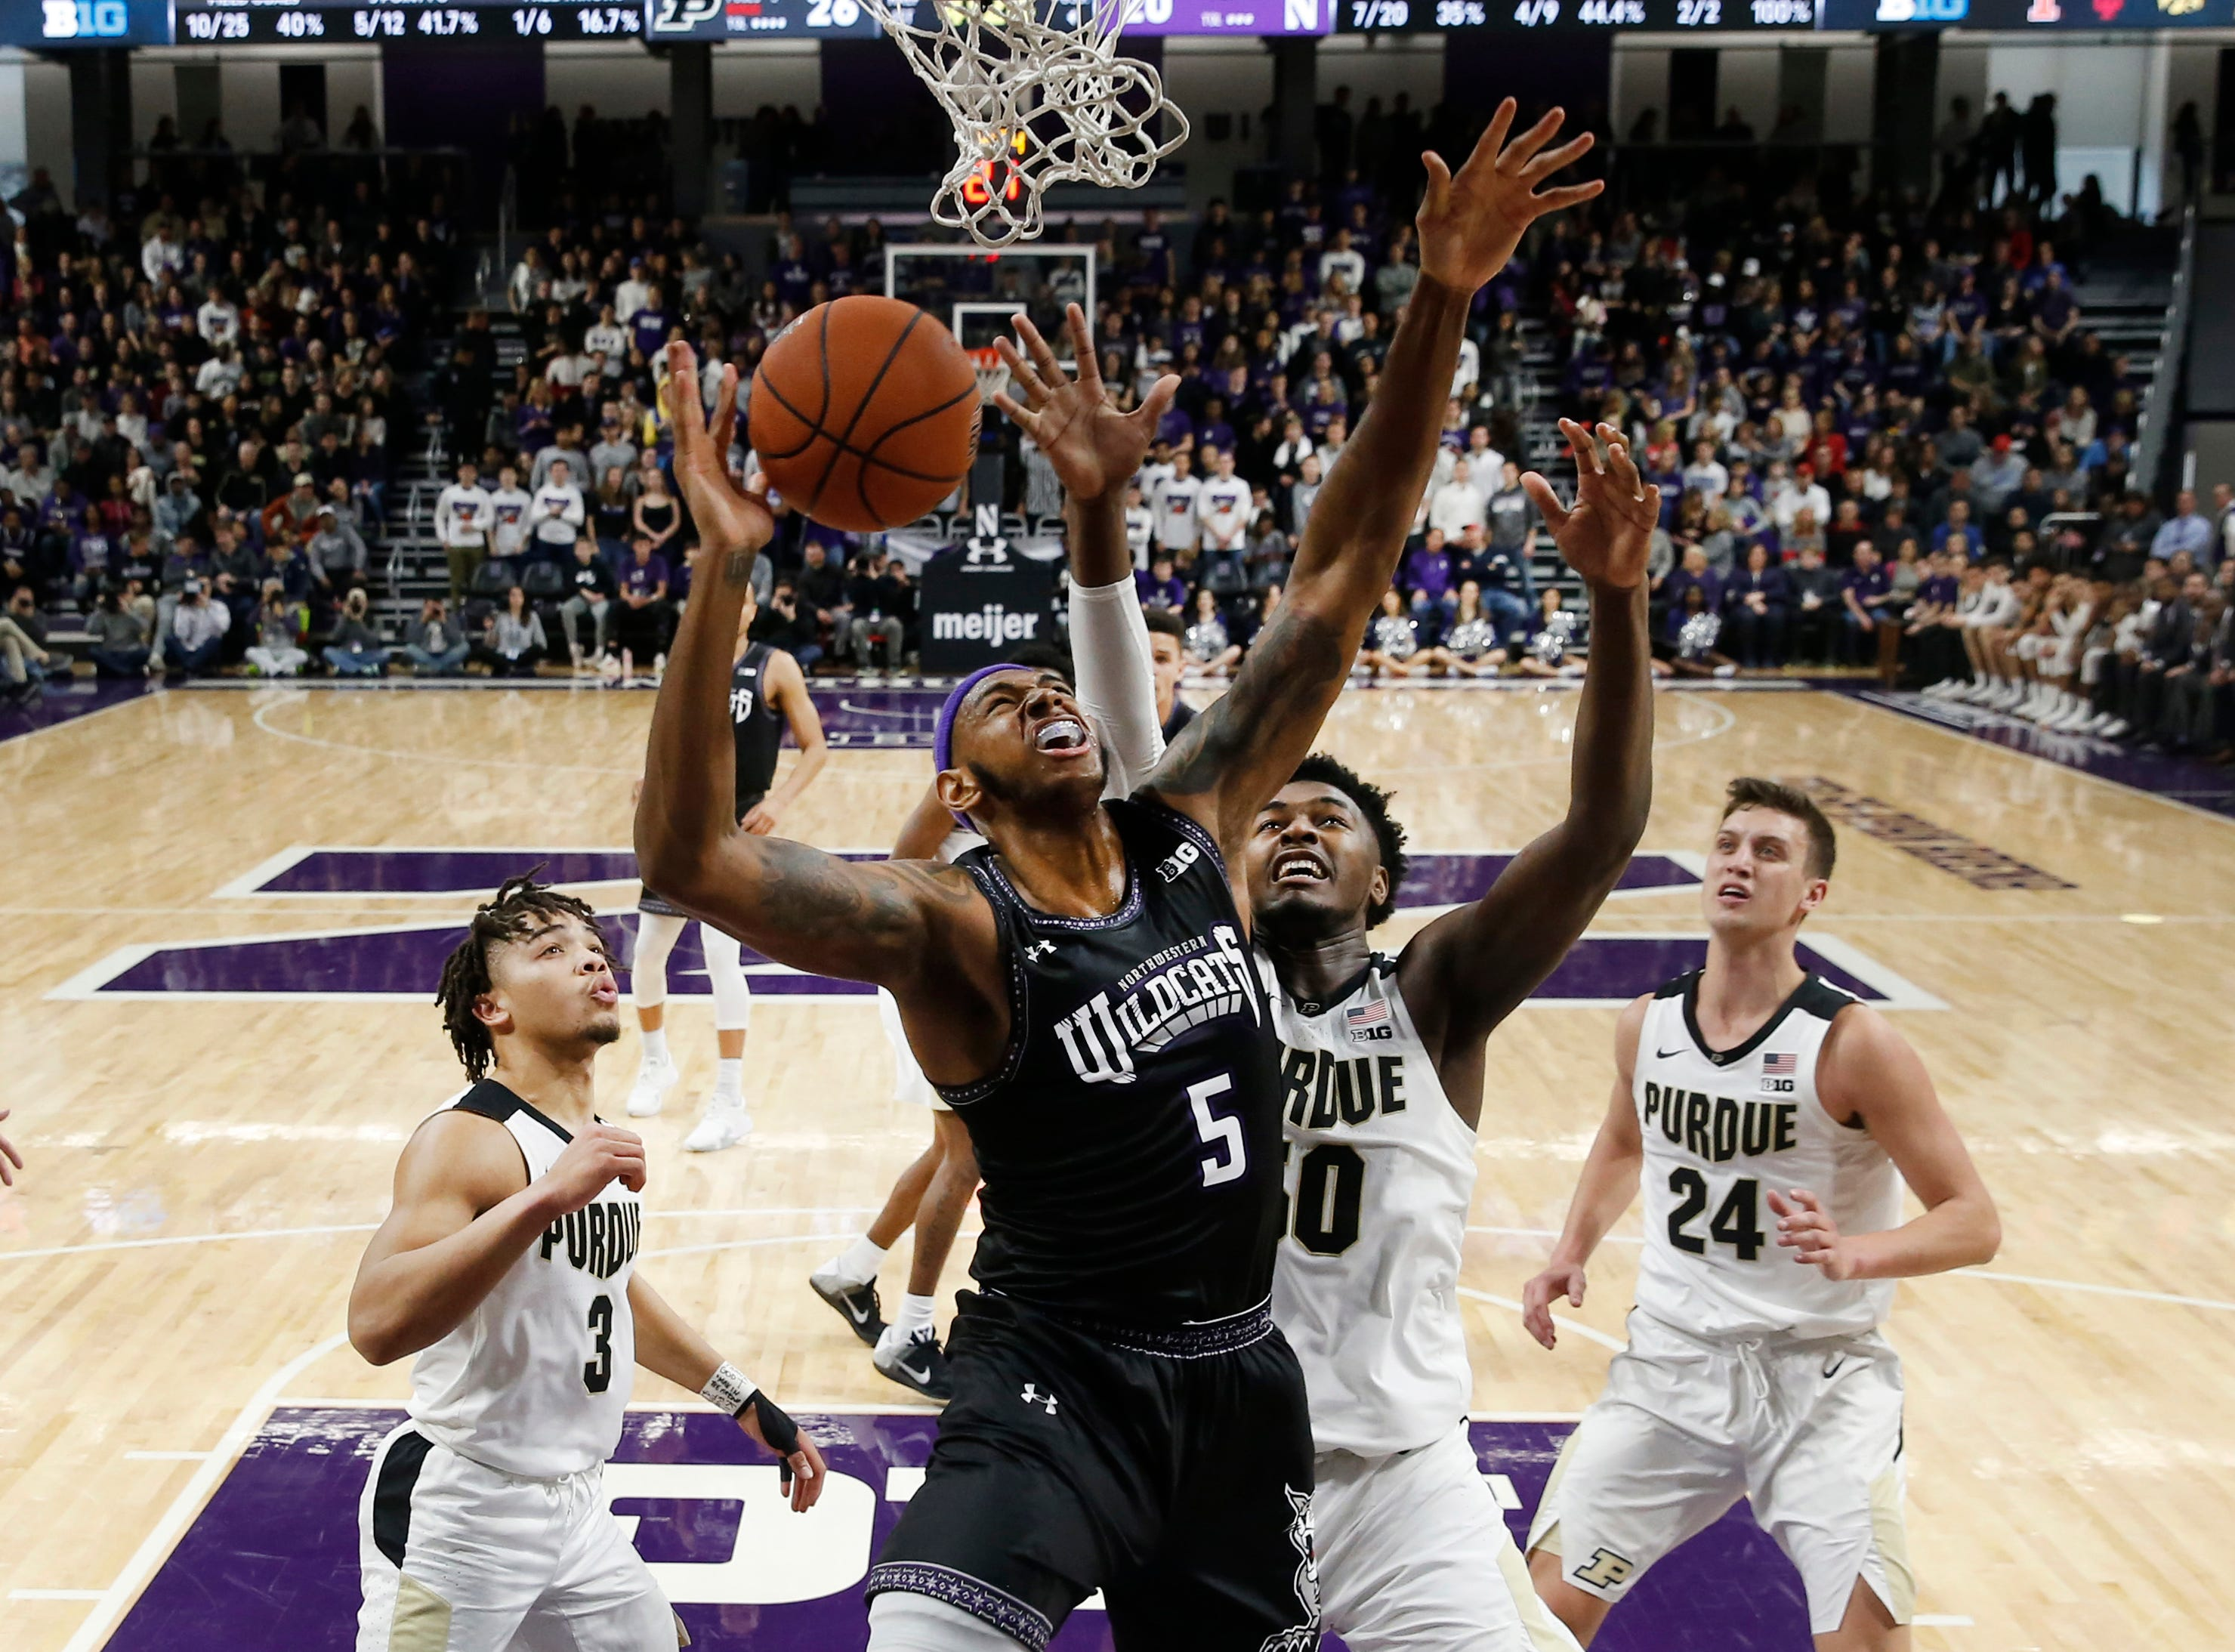 Mar 9, 2019; Evanston, IL, USA; Northwestern Wildcats center Dererk Pardon (5) shoots against Purdue Boilermakers forward Trevion Williams (50) during the first half at Welsh-Ryan Arena. Mandatory Credit: Nuccio DiNuzzo-USA TODAY Sports